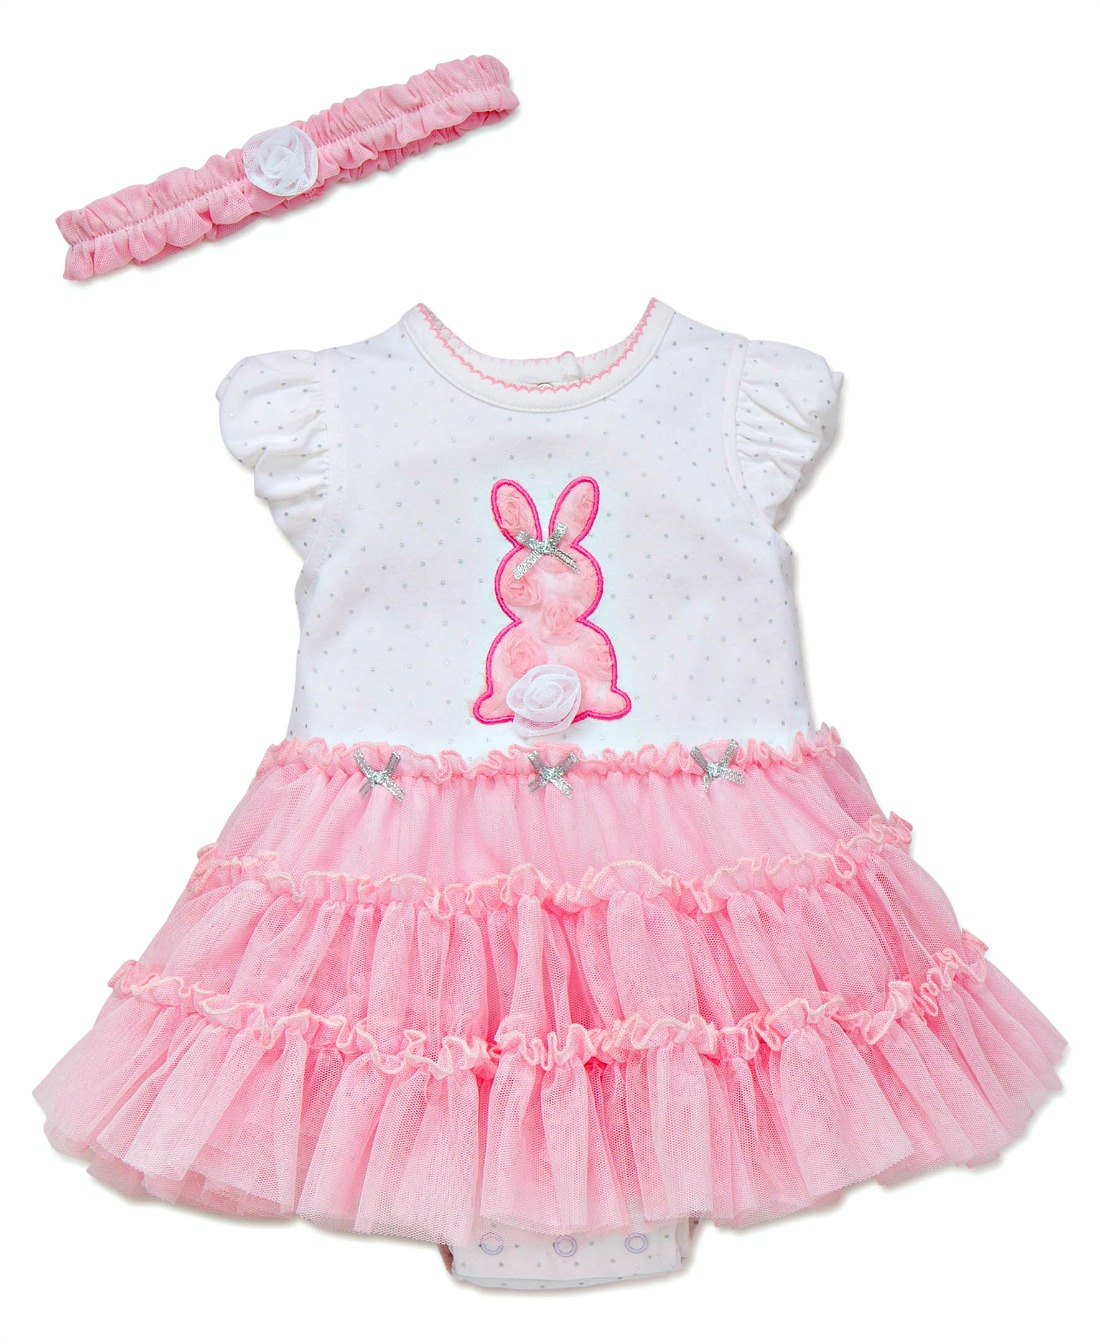 Baby Girl Christmas Dresses 18 Months